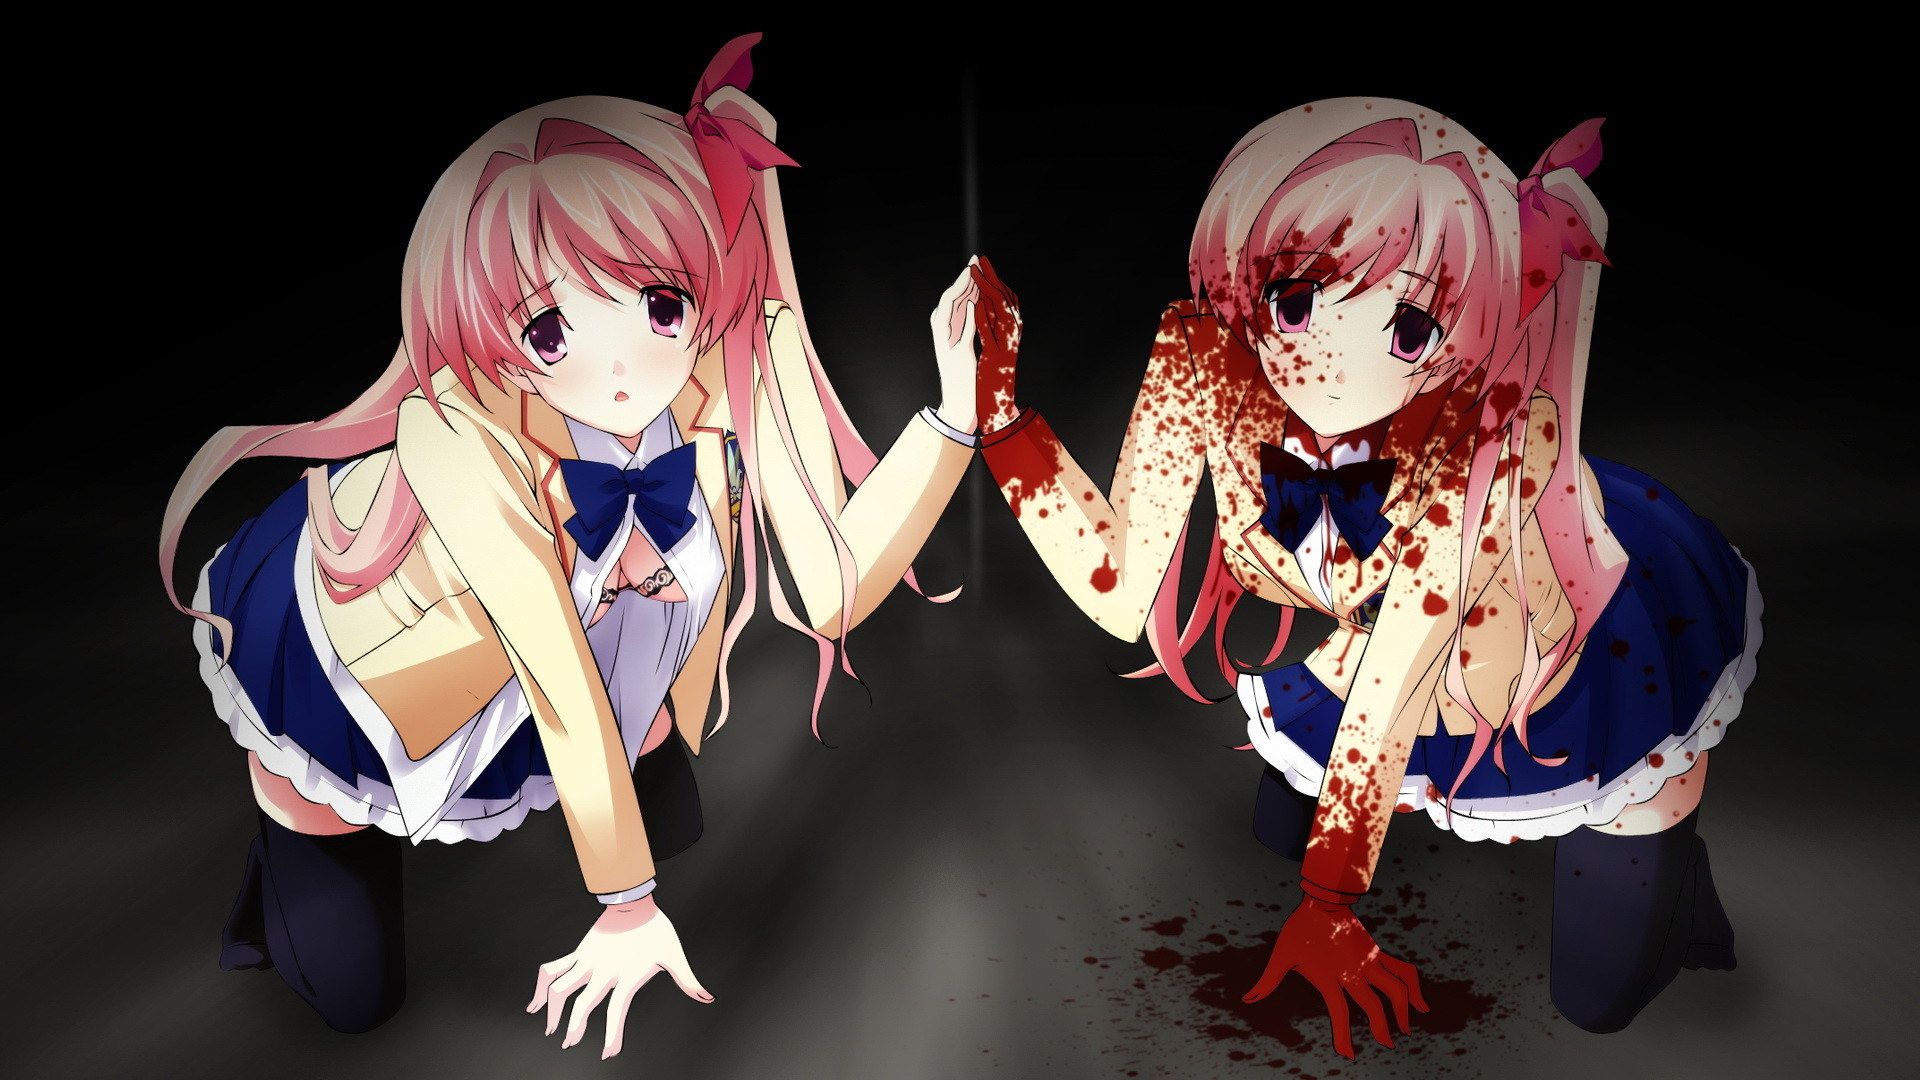 Res: 1920x1080, wallpaper #11 Wallpaper from Chaos;Head